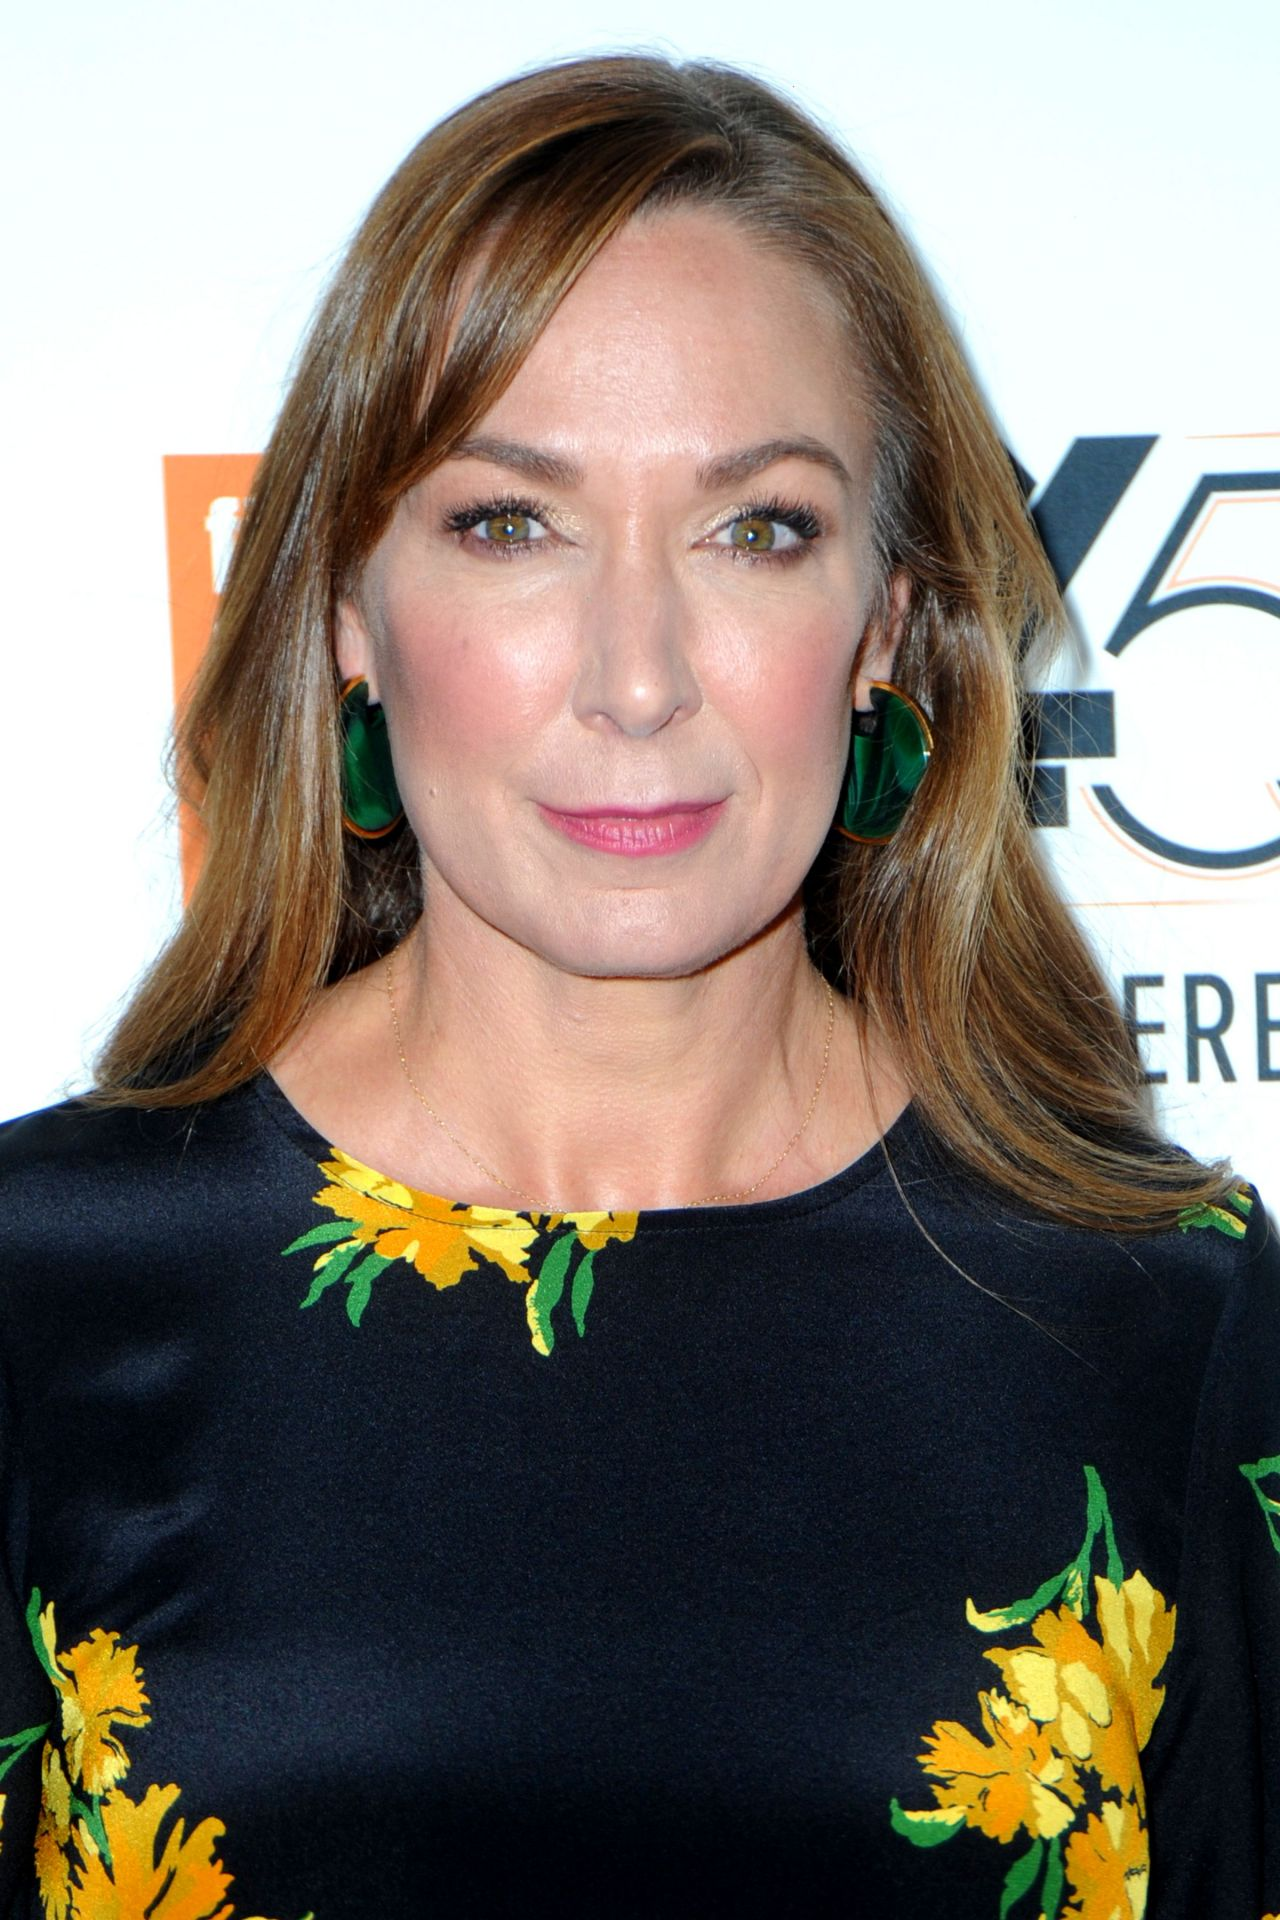 Topless Elizabeth Marvel naked photo 2017